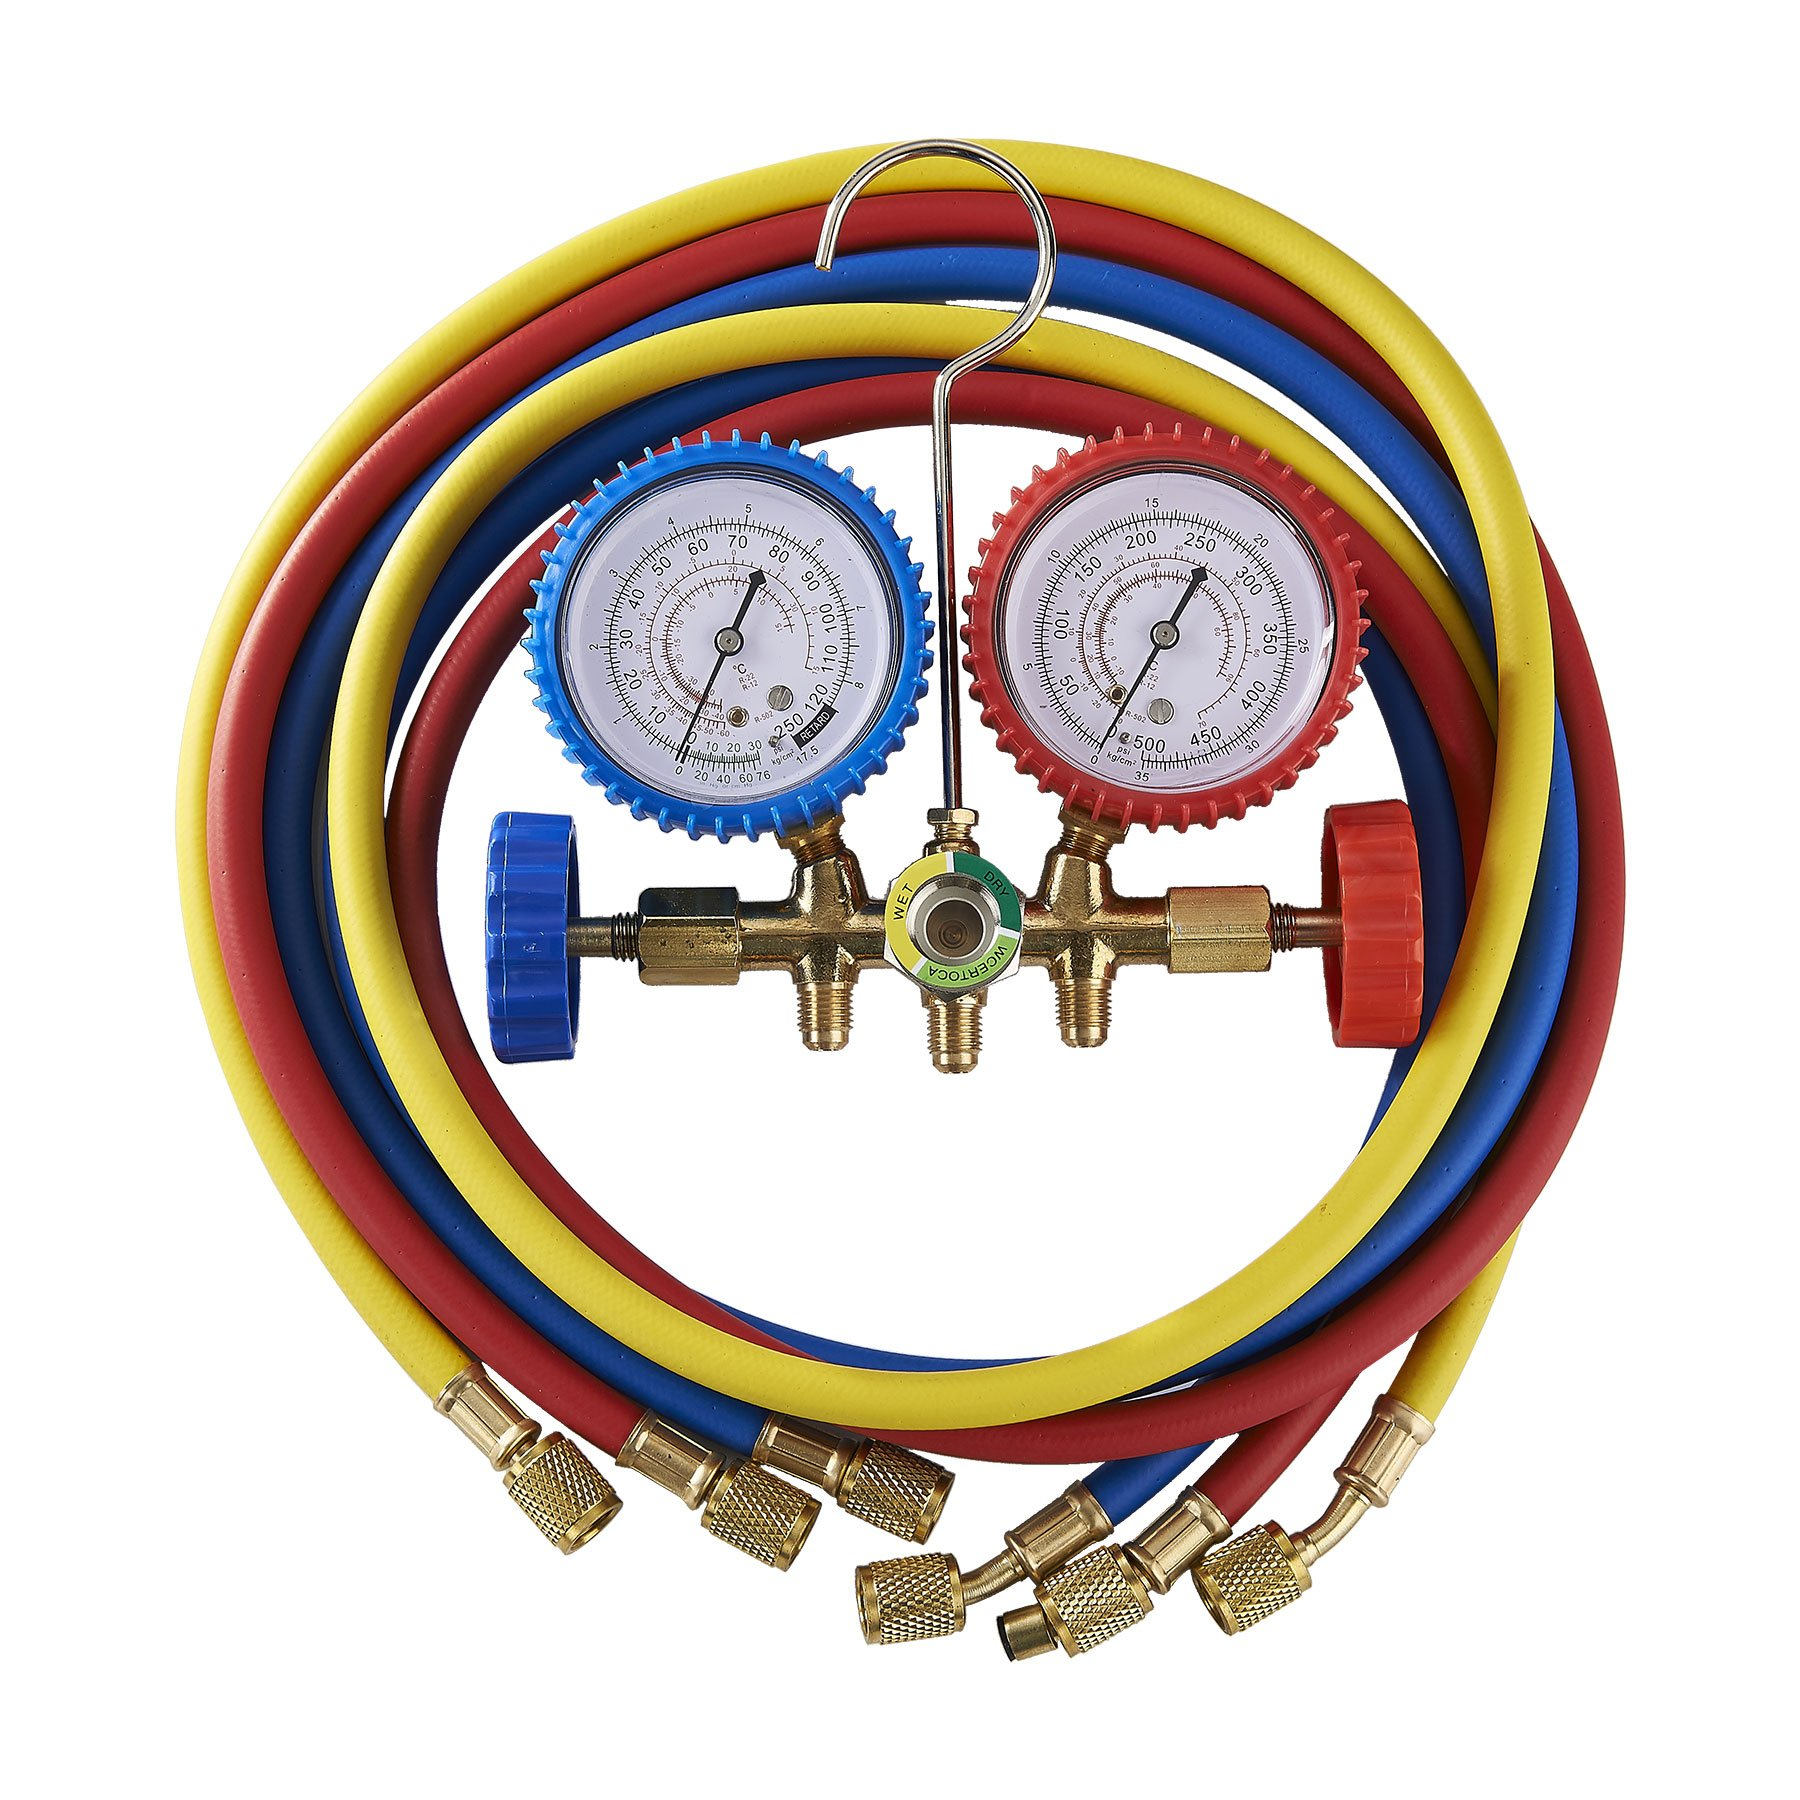 OrionMotorTech 5FT AC Diagnostic Manifold Freon Gauge Set for R12, R22, R502 Refrigerants, without Couplers